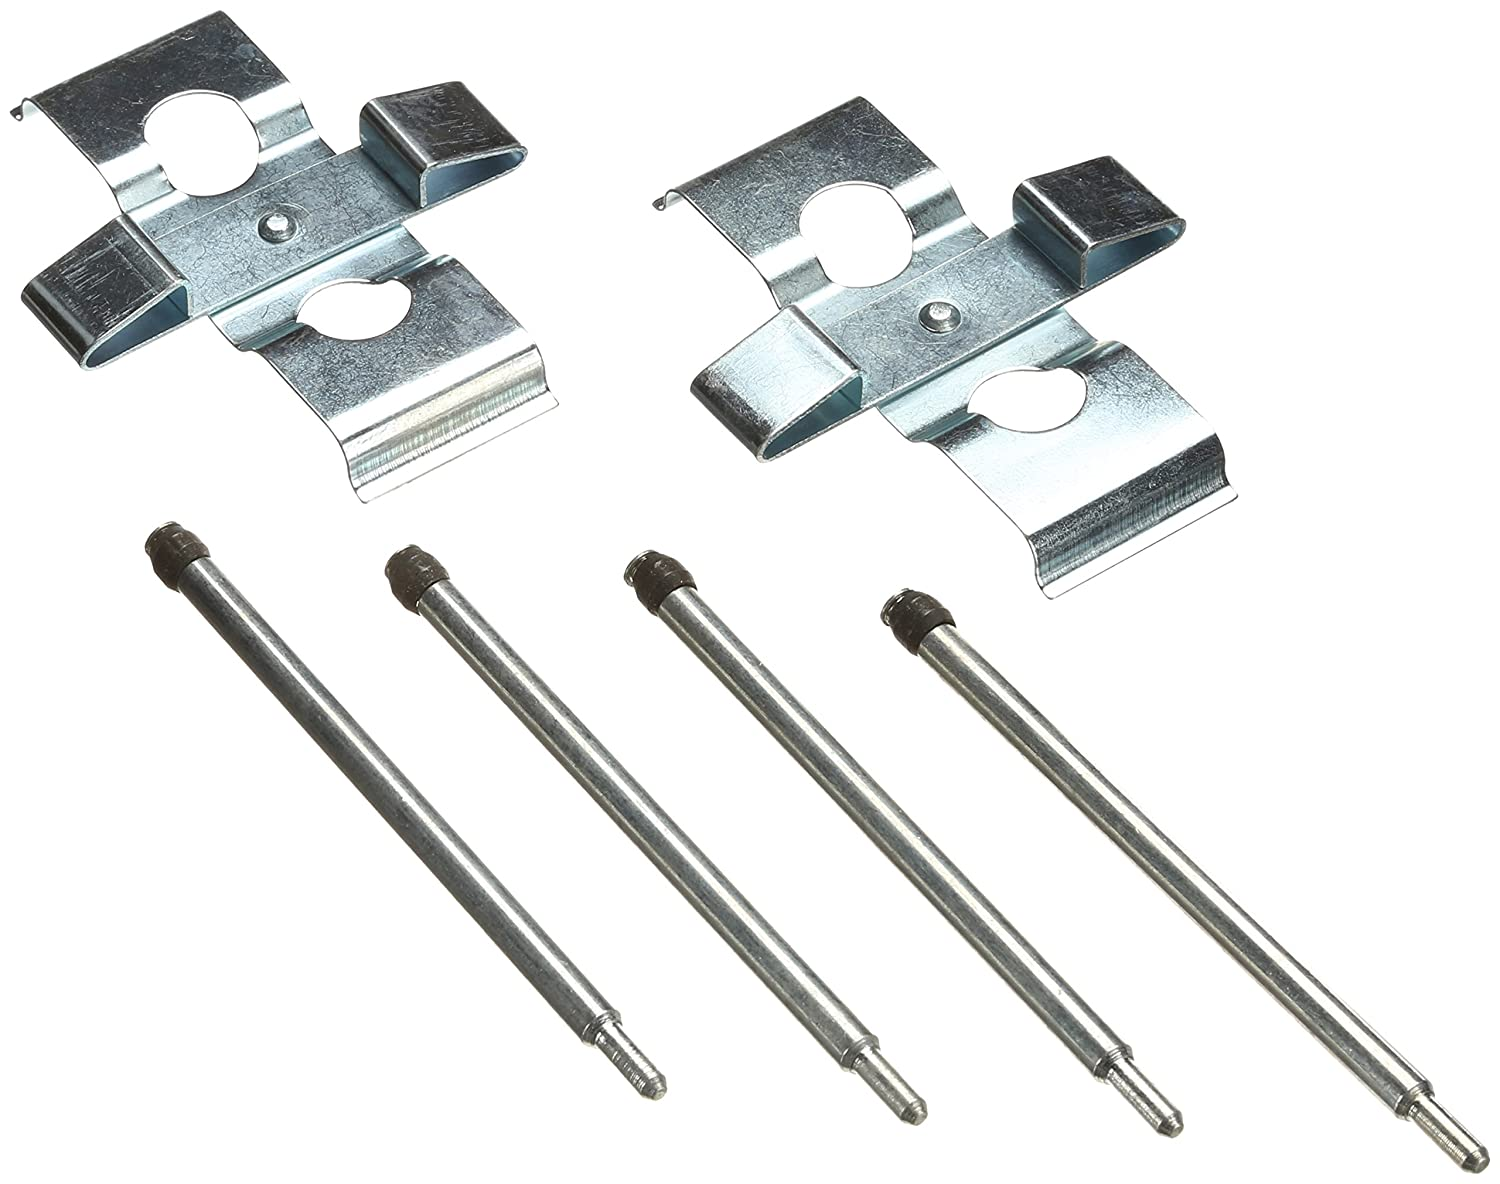 ABS 1686Q Disc Brake Pads Accessory Kit